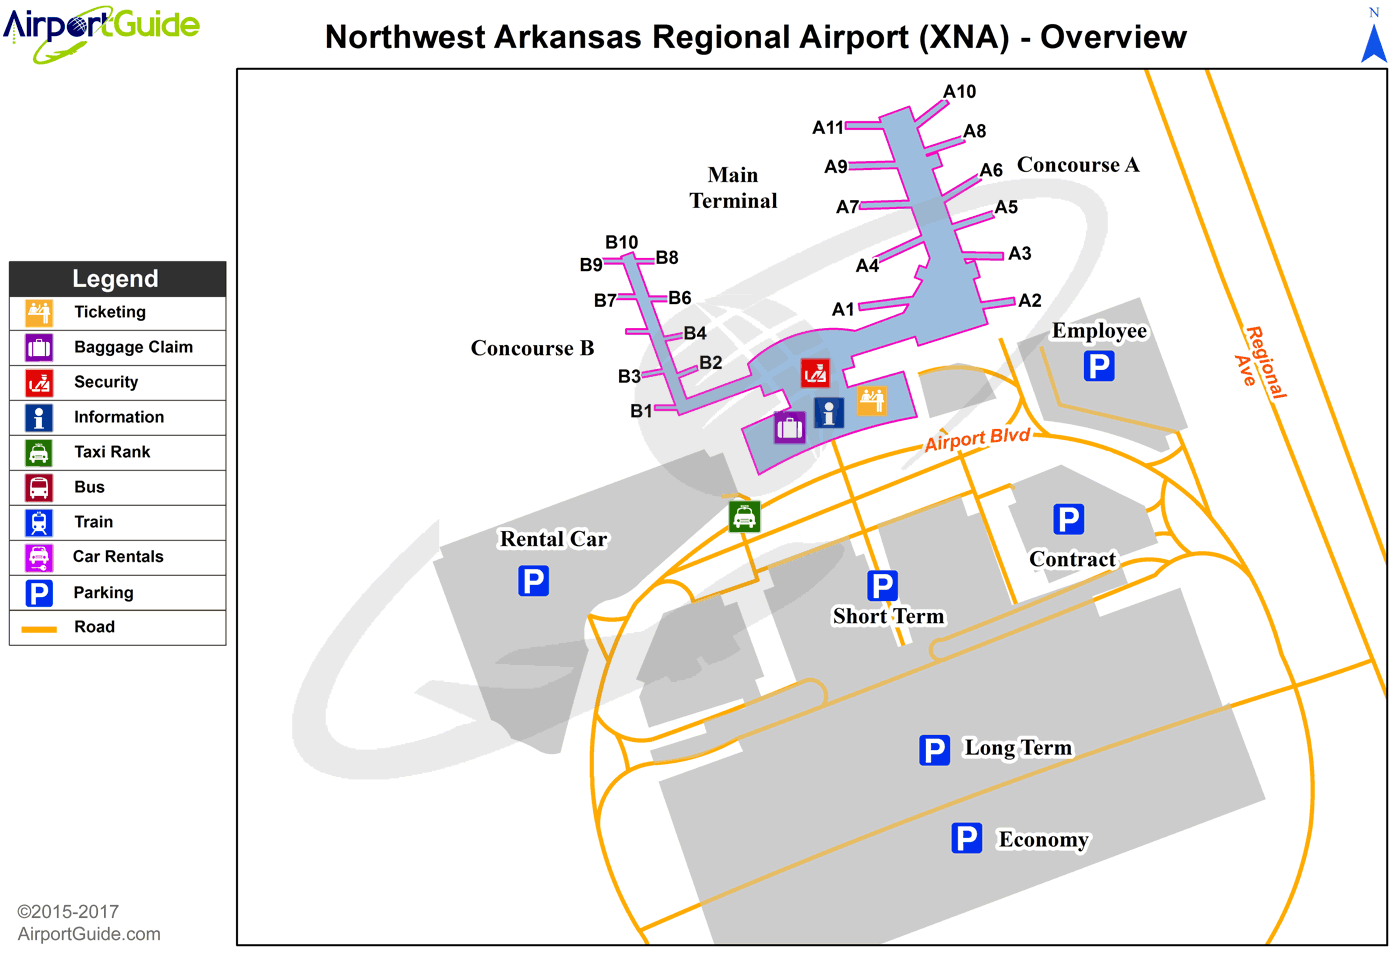 Fayetteville/Springdale/ - Northwest Arkansas Regional (XNA) Airport Terminal Map - Overview